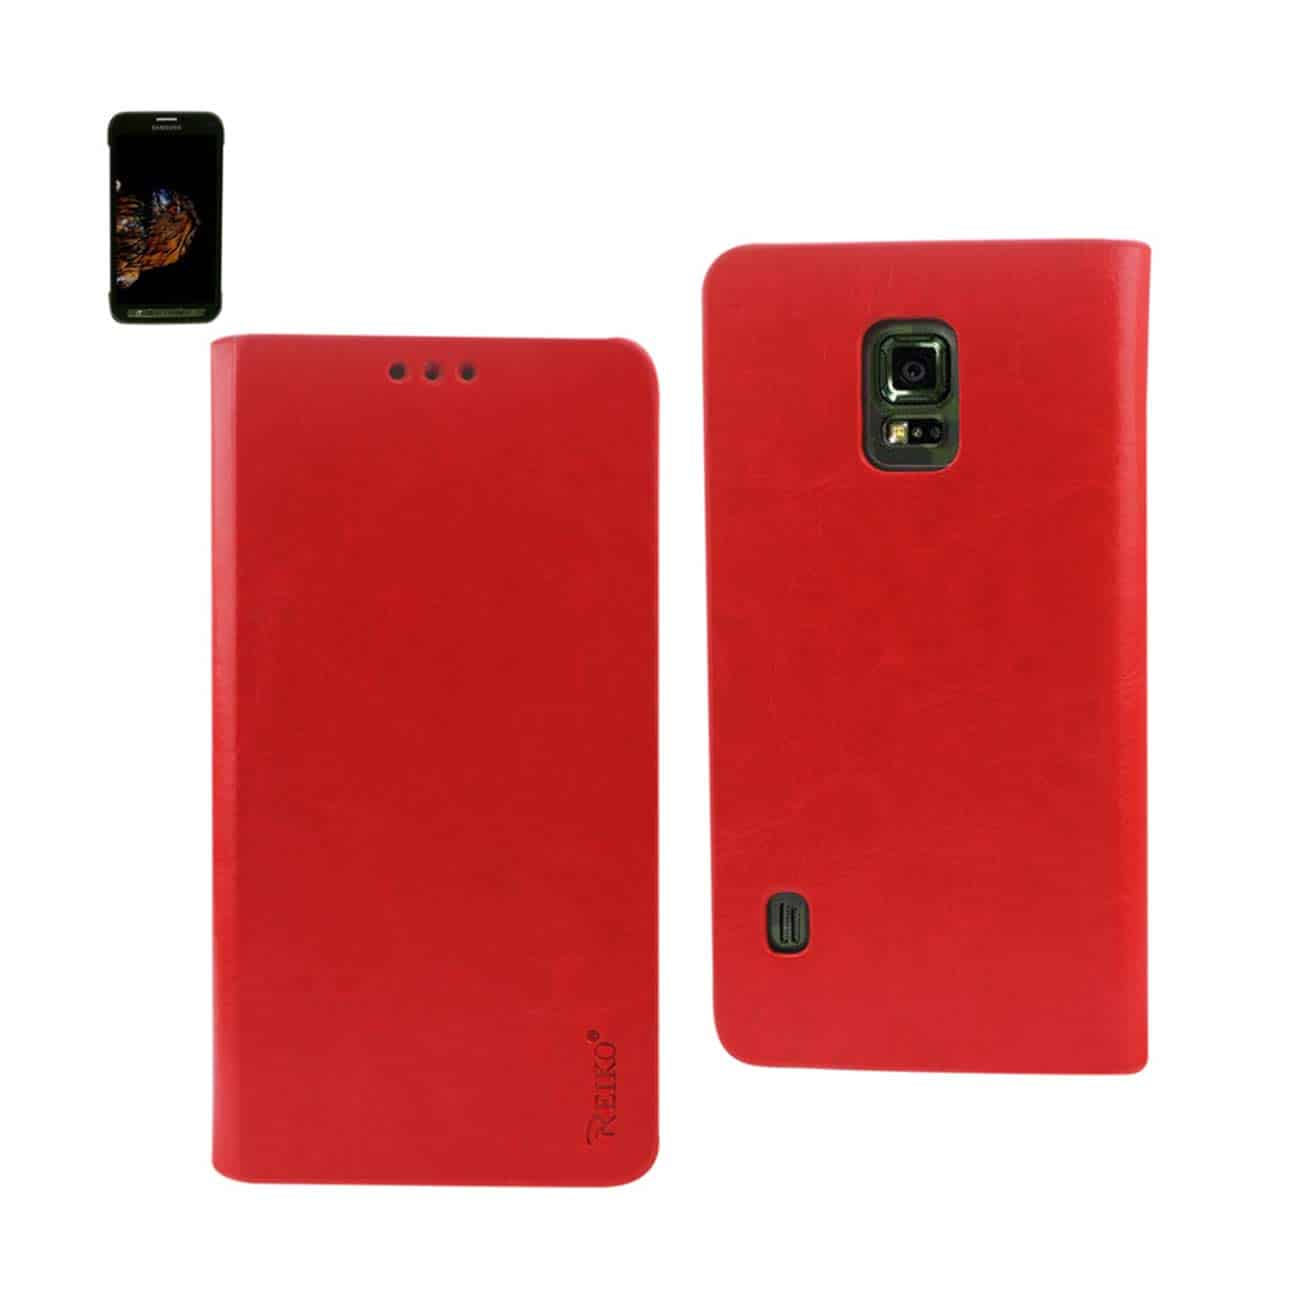 SAMSUNG GALAXY S5 ACTIVE FLIP FOLIO CASE WITH CARD HOLDER IN RED